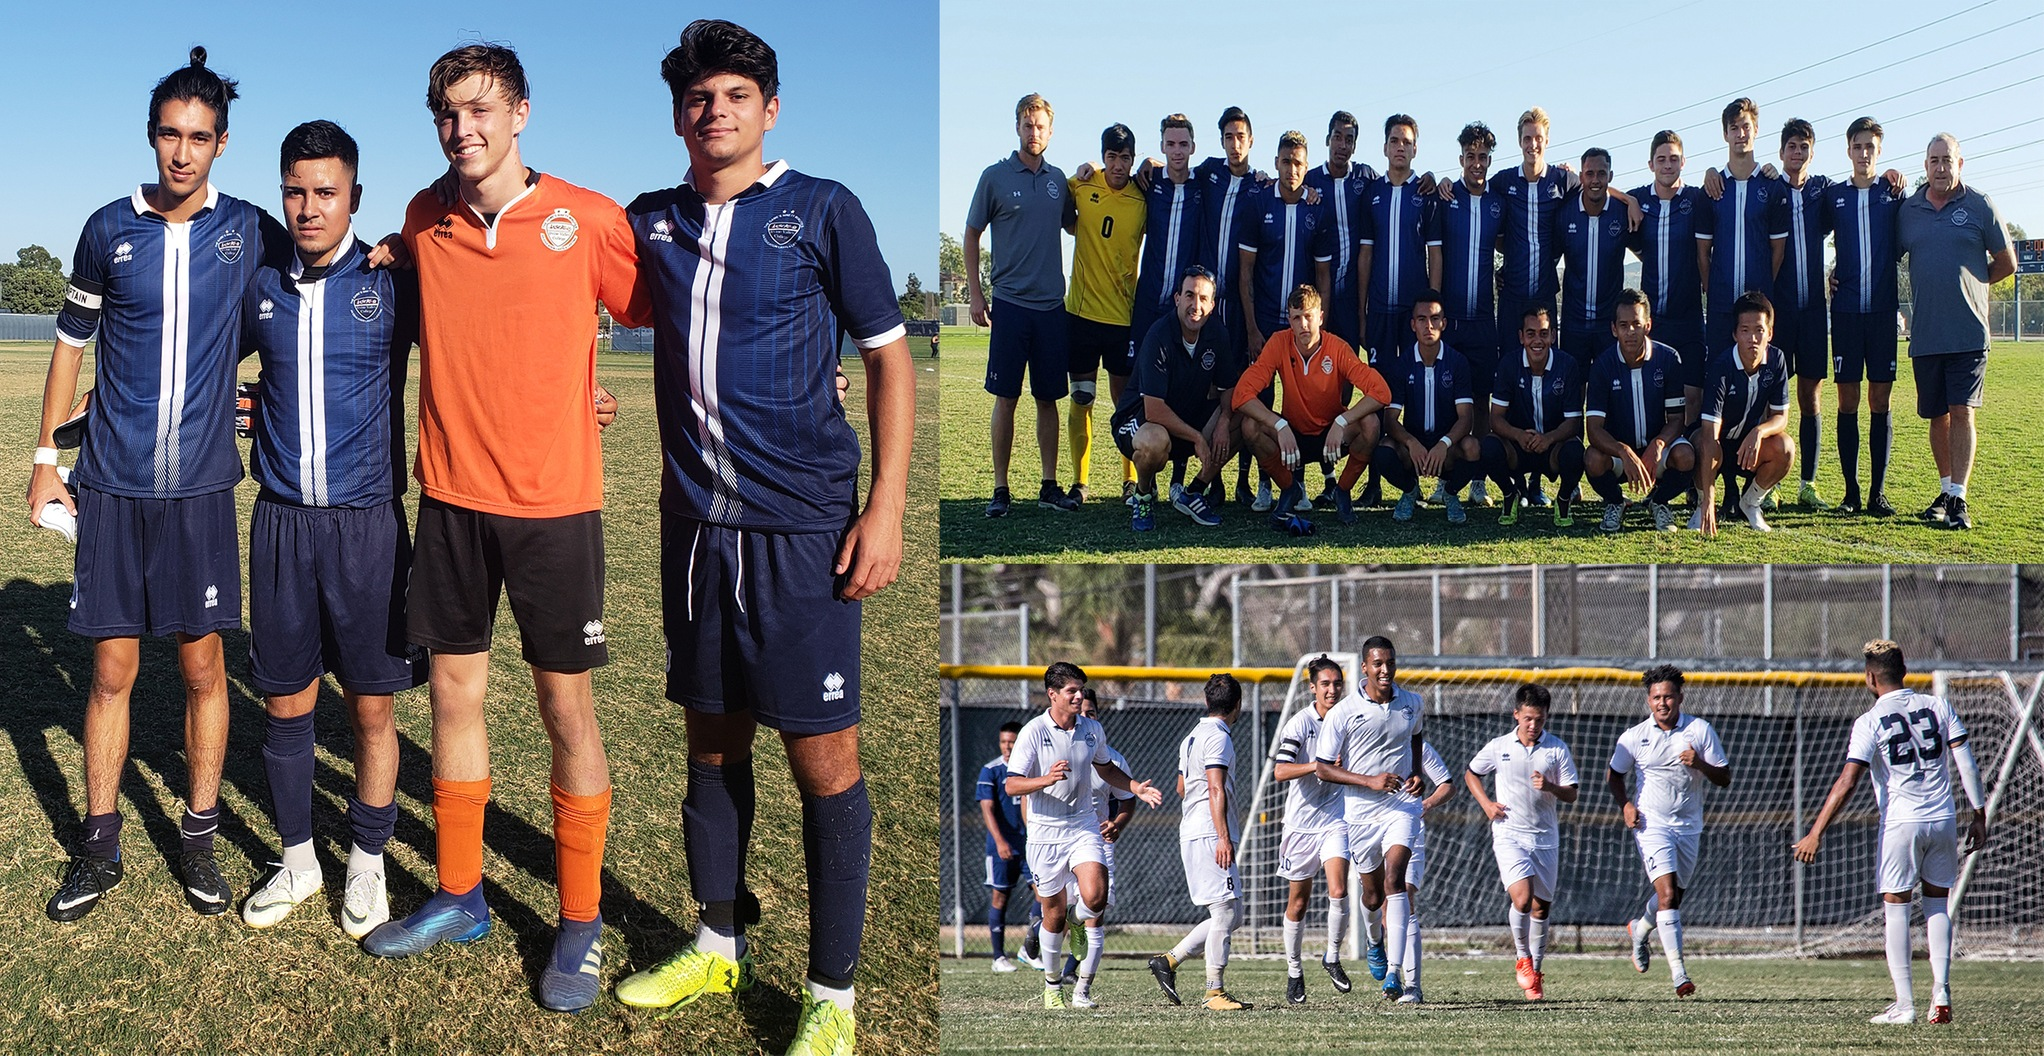 Honorable Mention Story - Men's soccer team makes playoff run